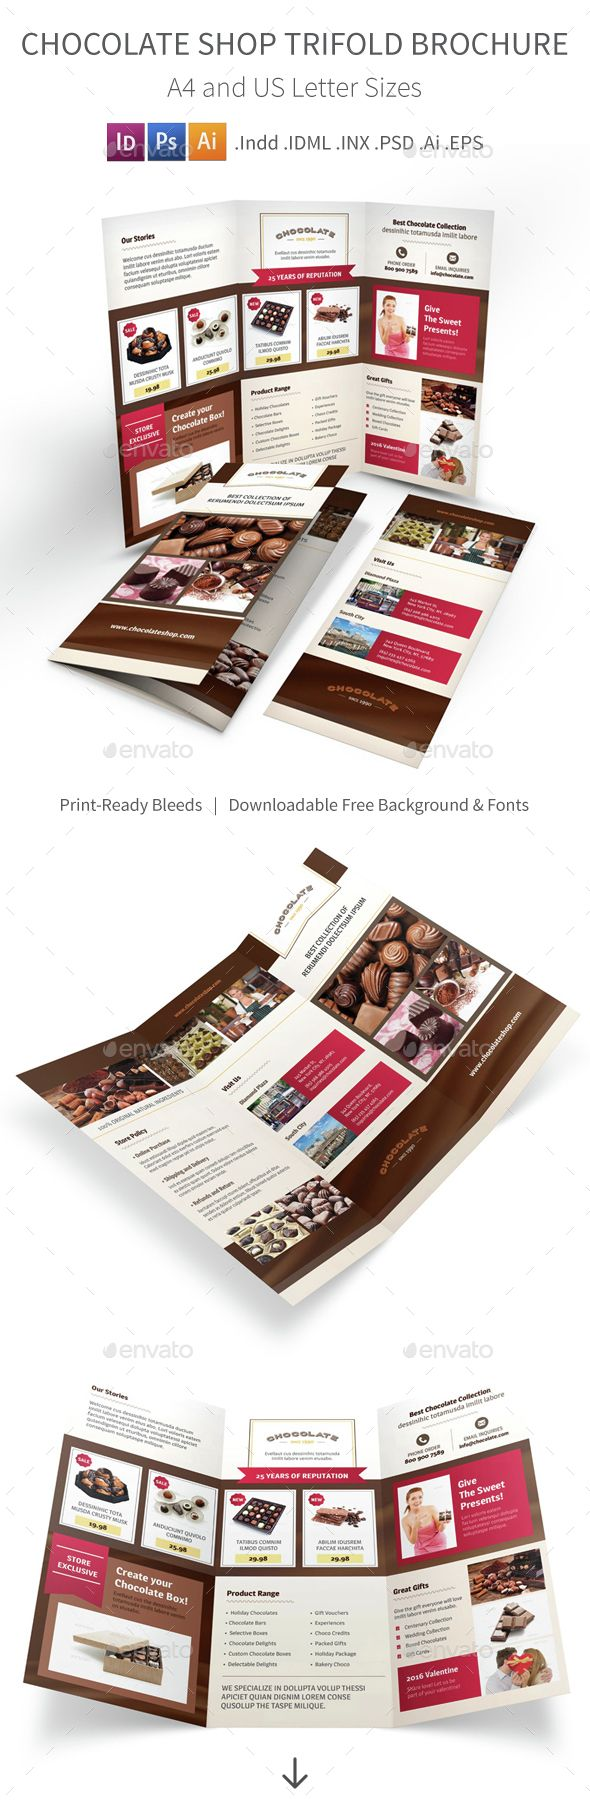 Chocolate Shop Trifold Brochure 2